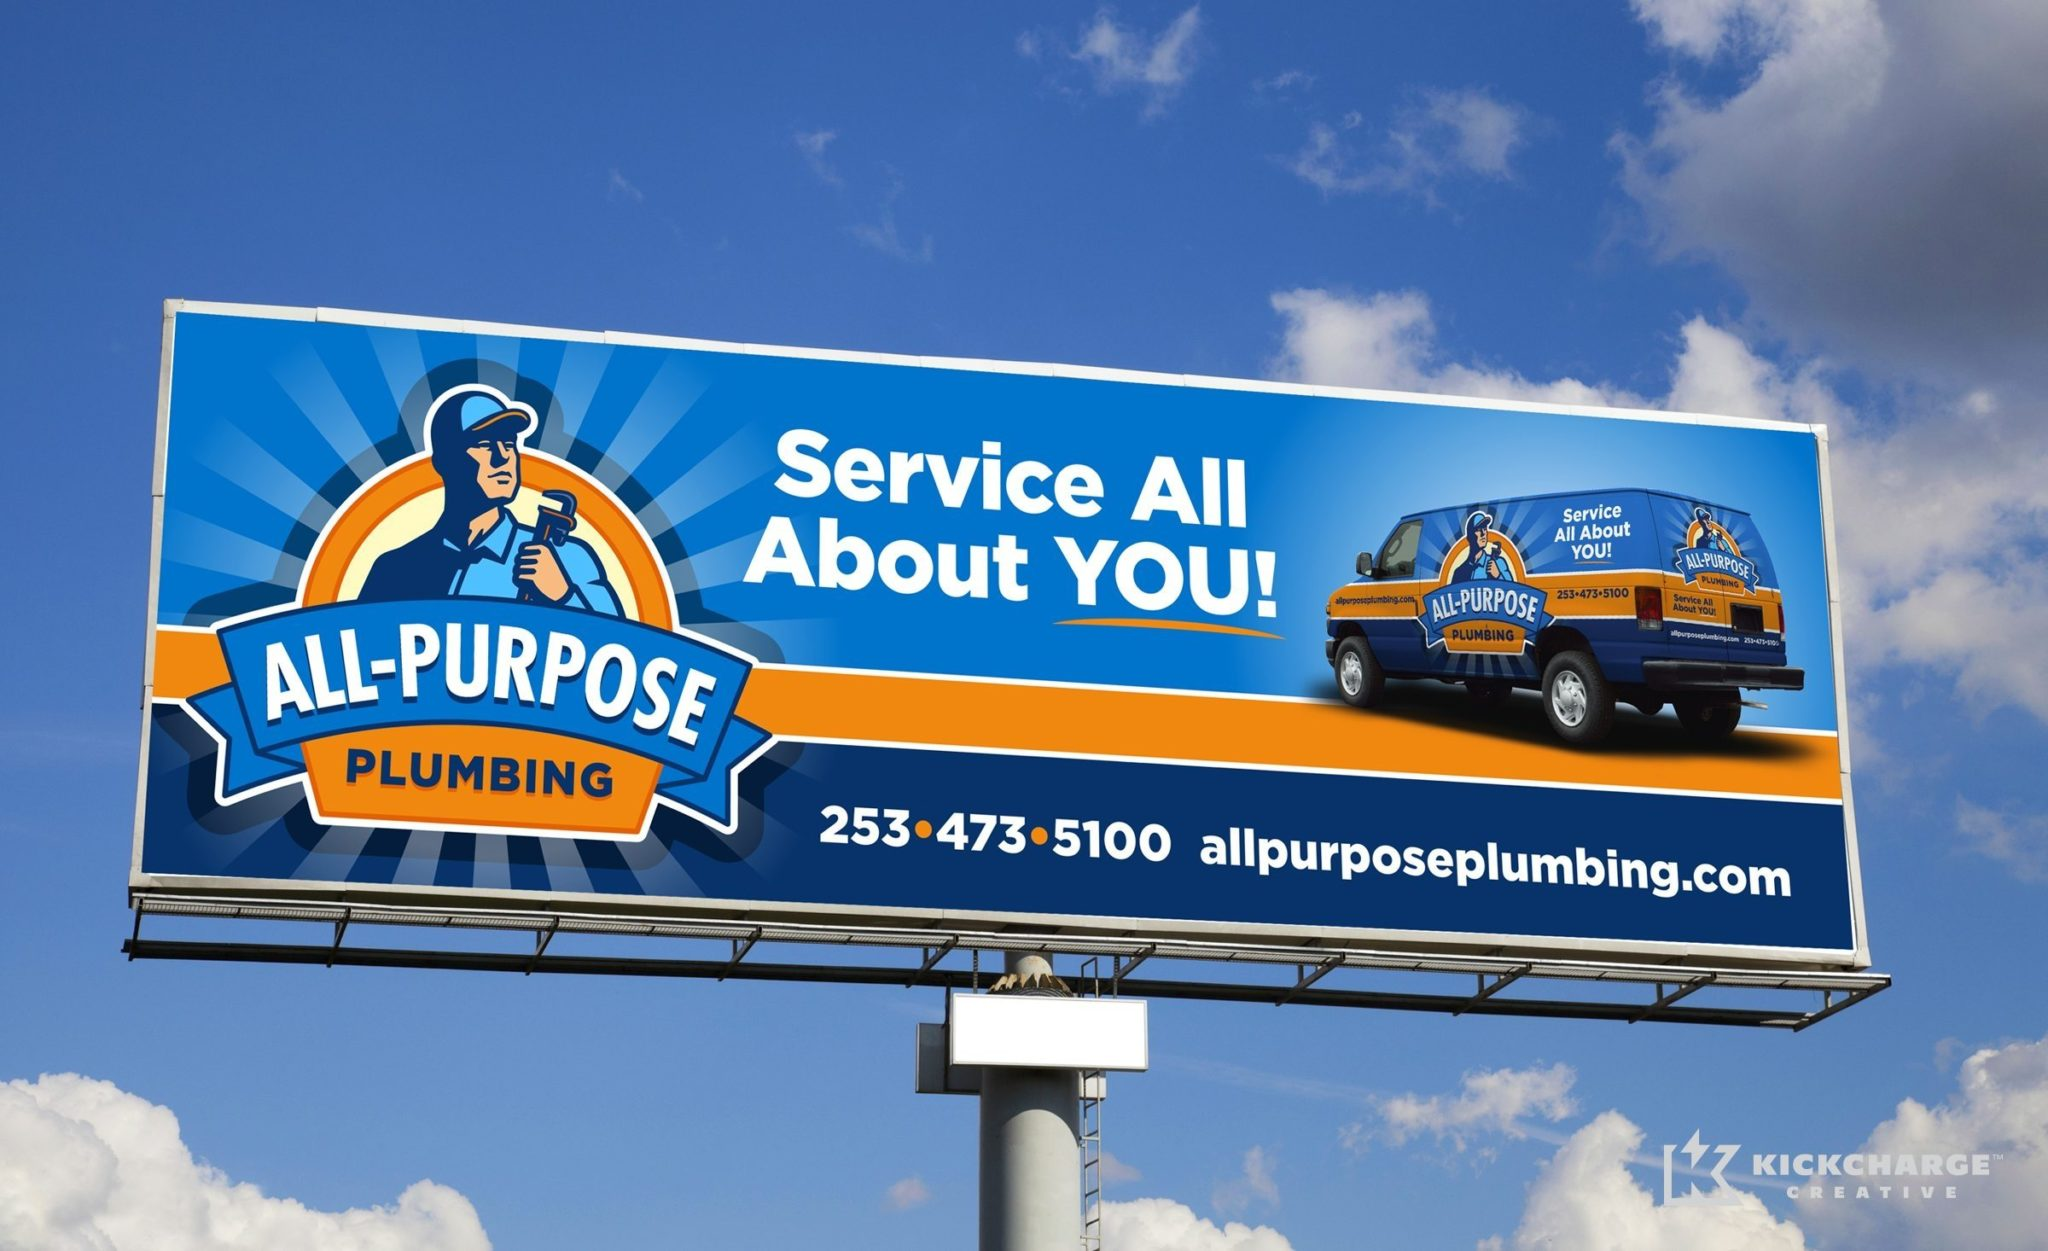 Billboard design for a plumbing company in Tacoma, WA.